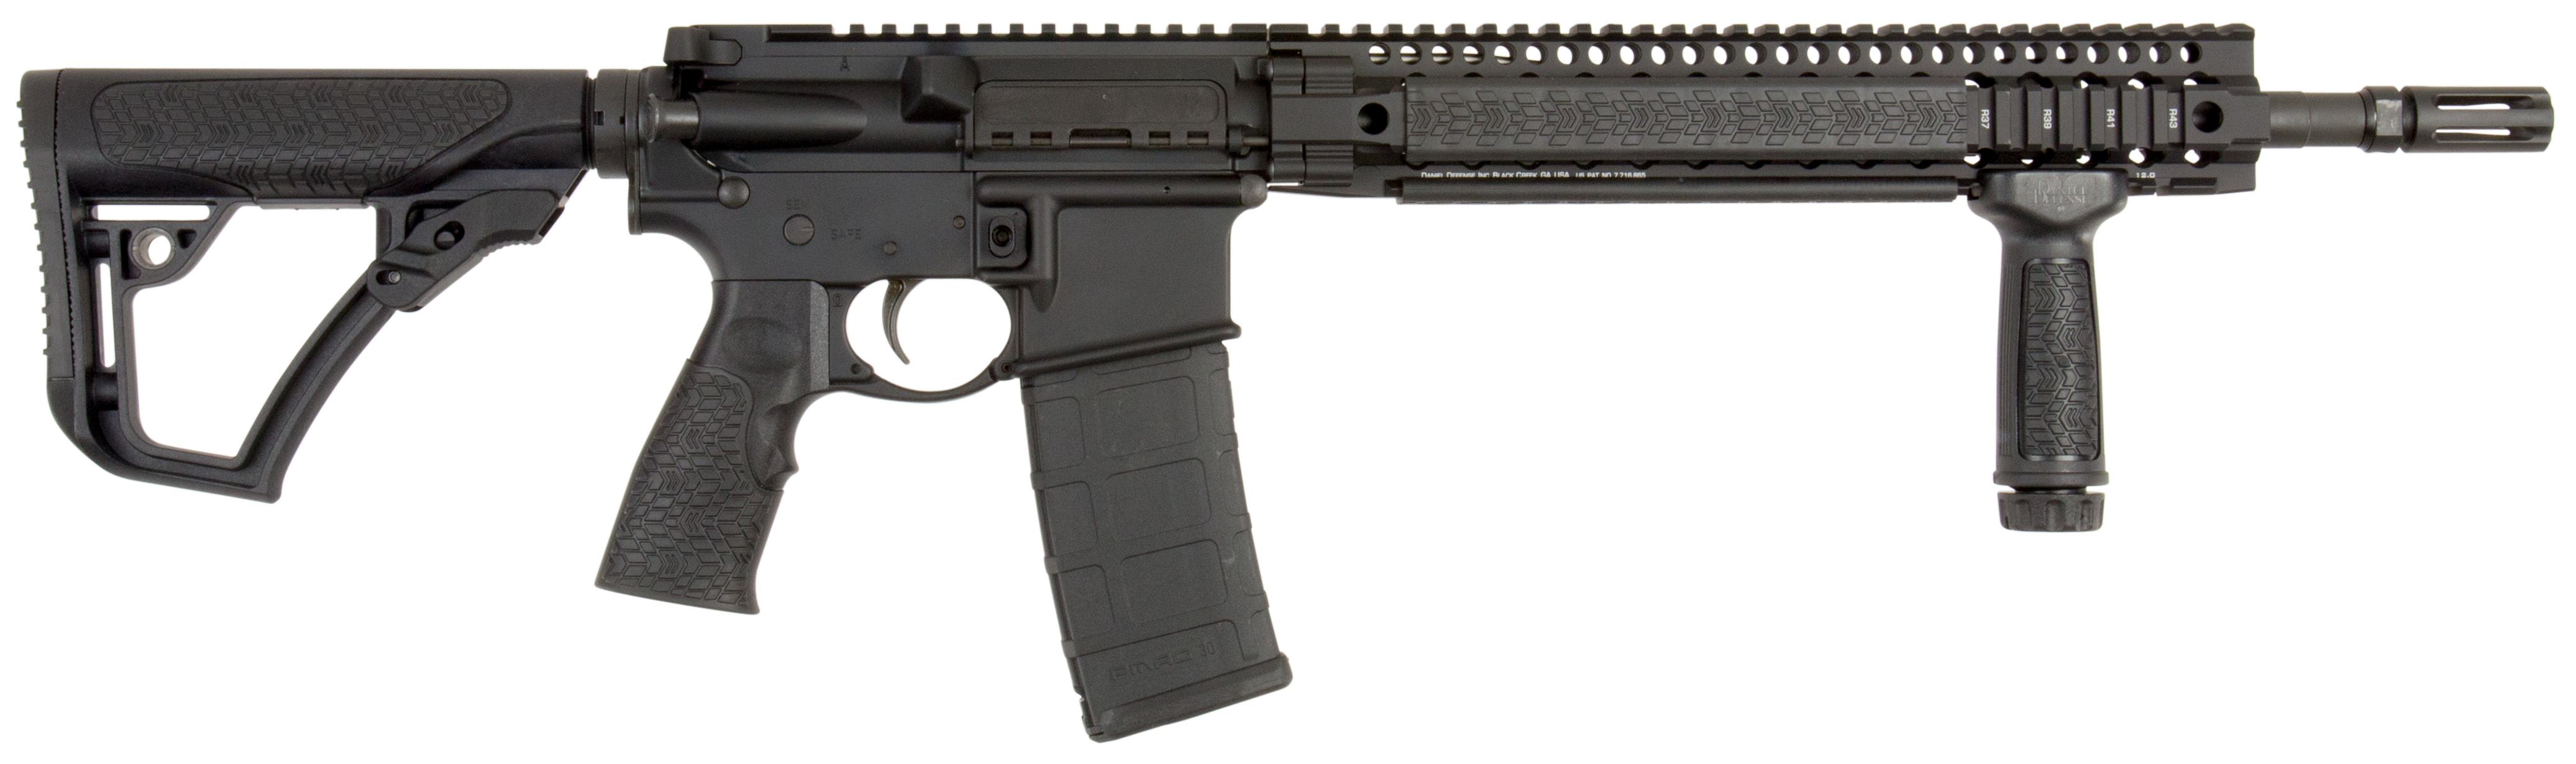 Daniel Defense 02049055 DDM4 V5S *CA Compliant* Semi-Automatic 223 Remington/5.56 NATO 14.5